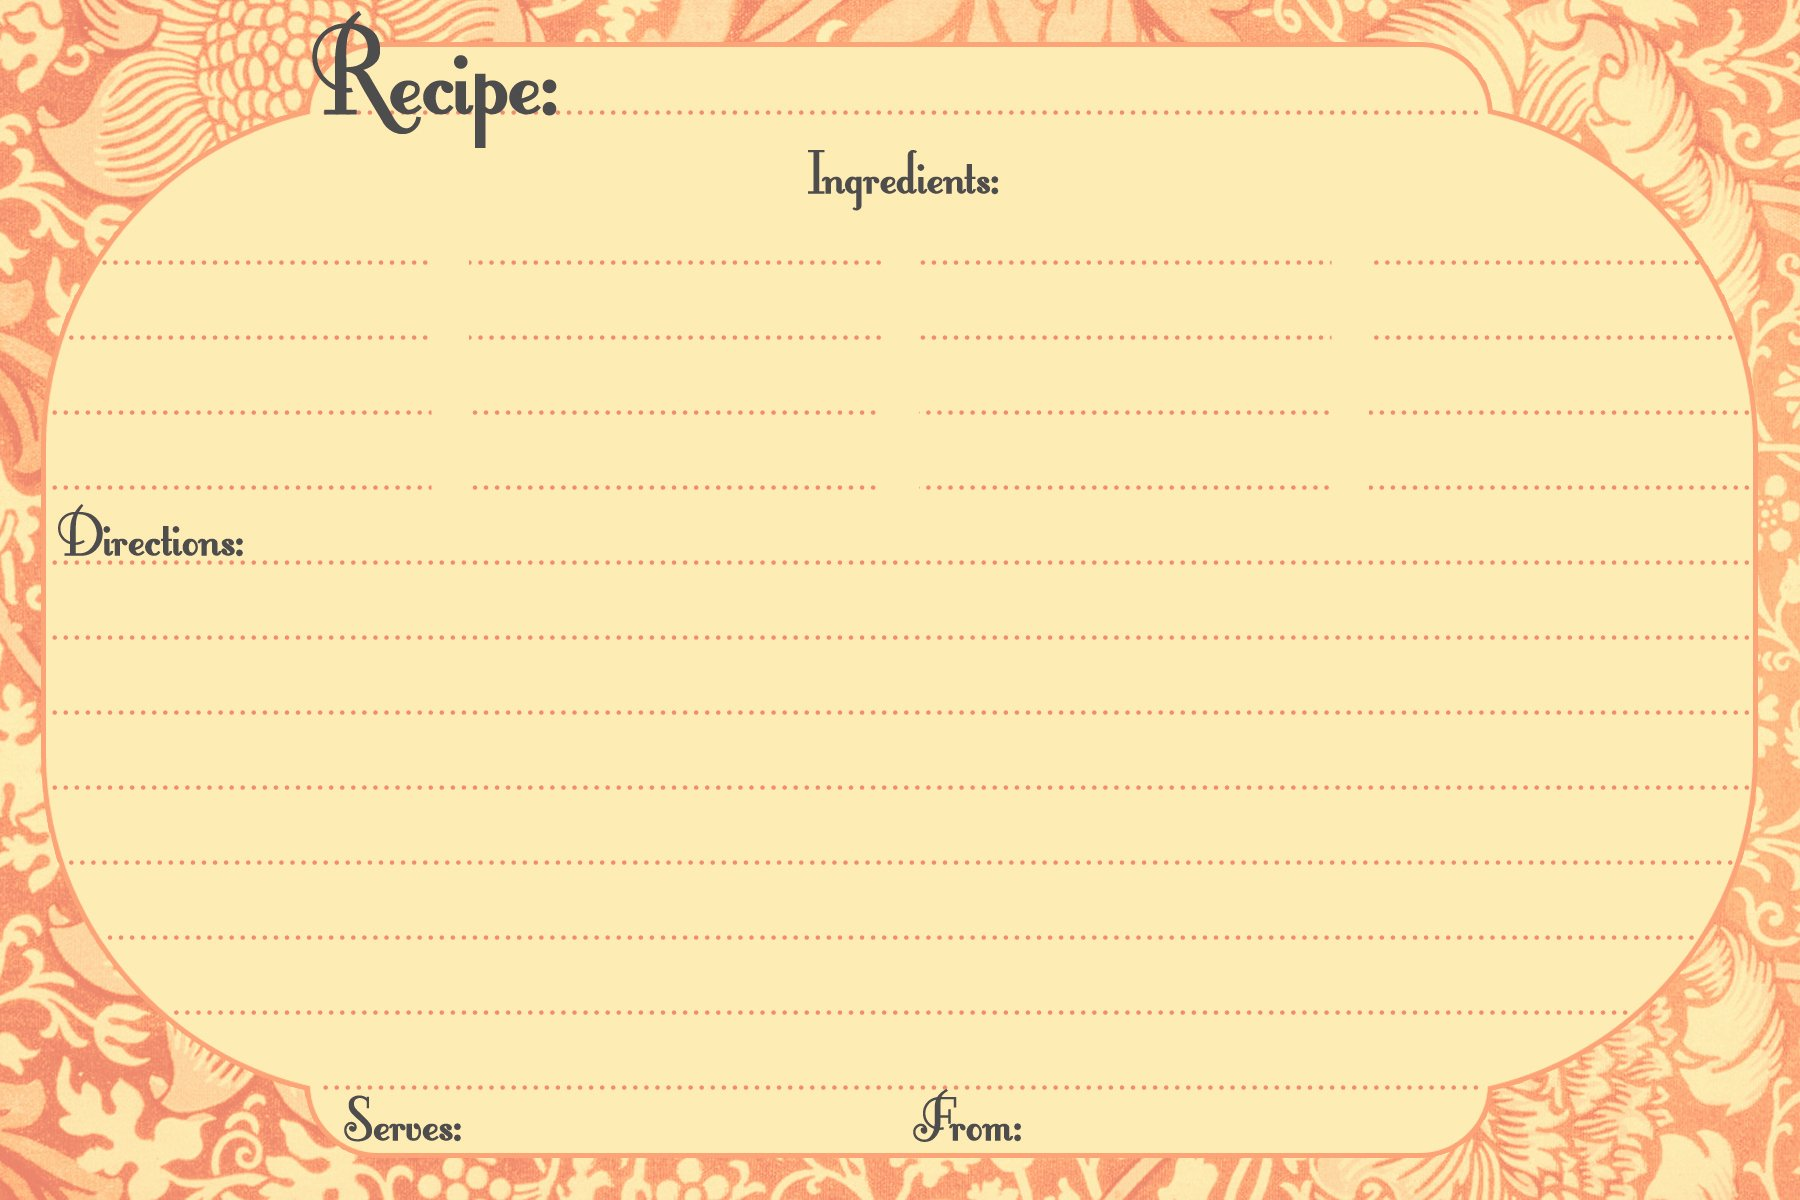 Microsoft Word Recipe Template Lovely 13 Recipe Card Templates Excel Pdf formats